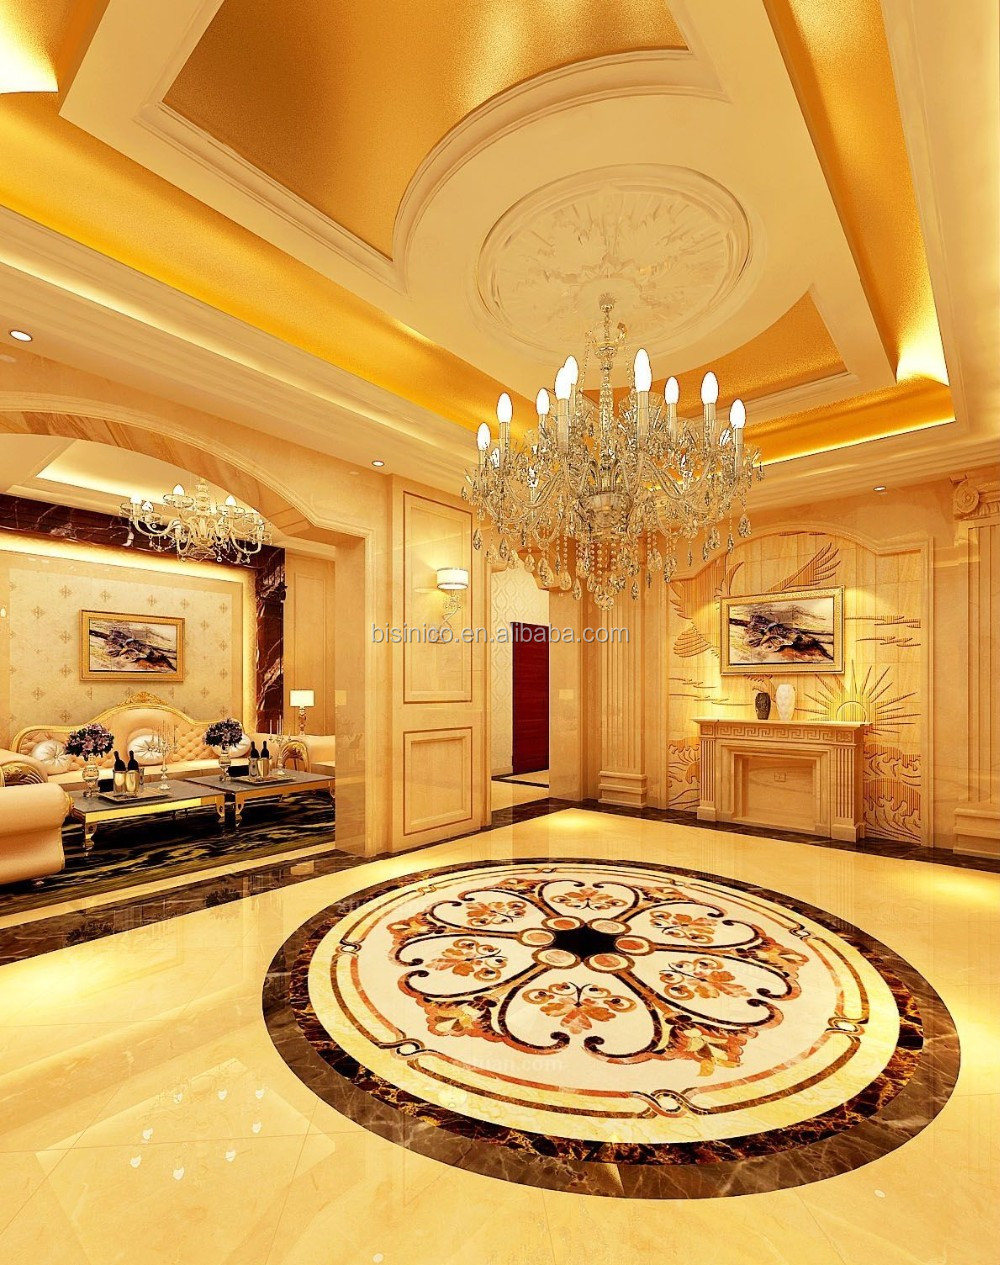 3D Interior Rendering Service For Luxury European Style Living Room Reception Hall with Furnitures